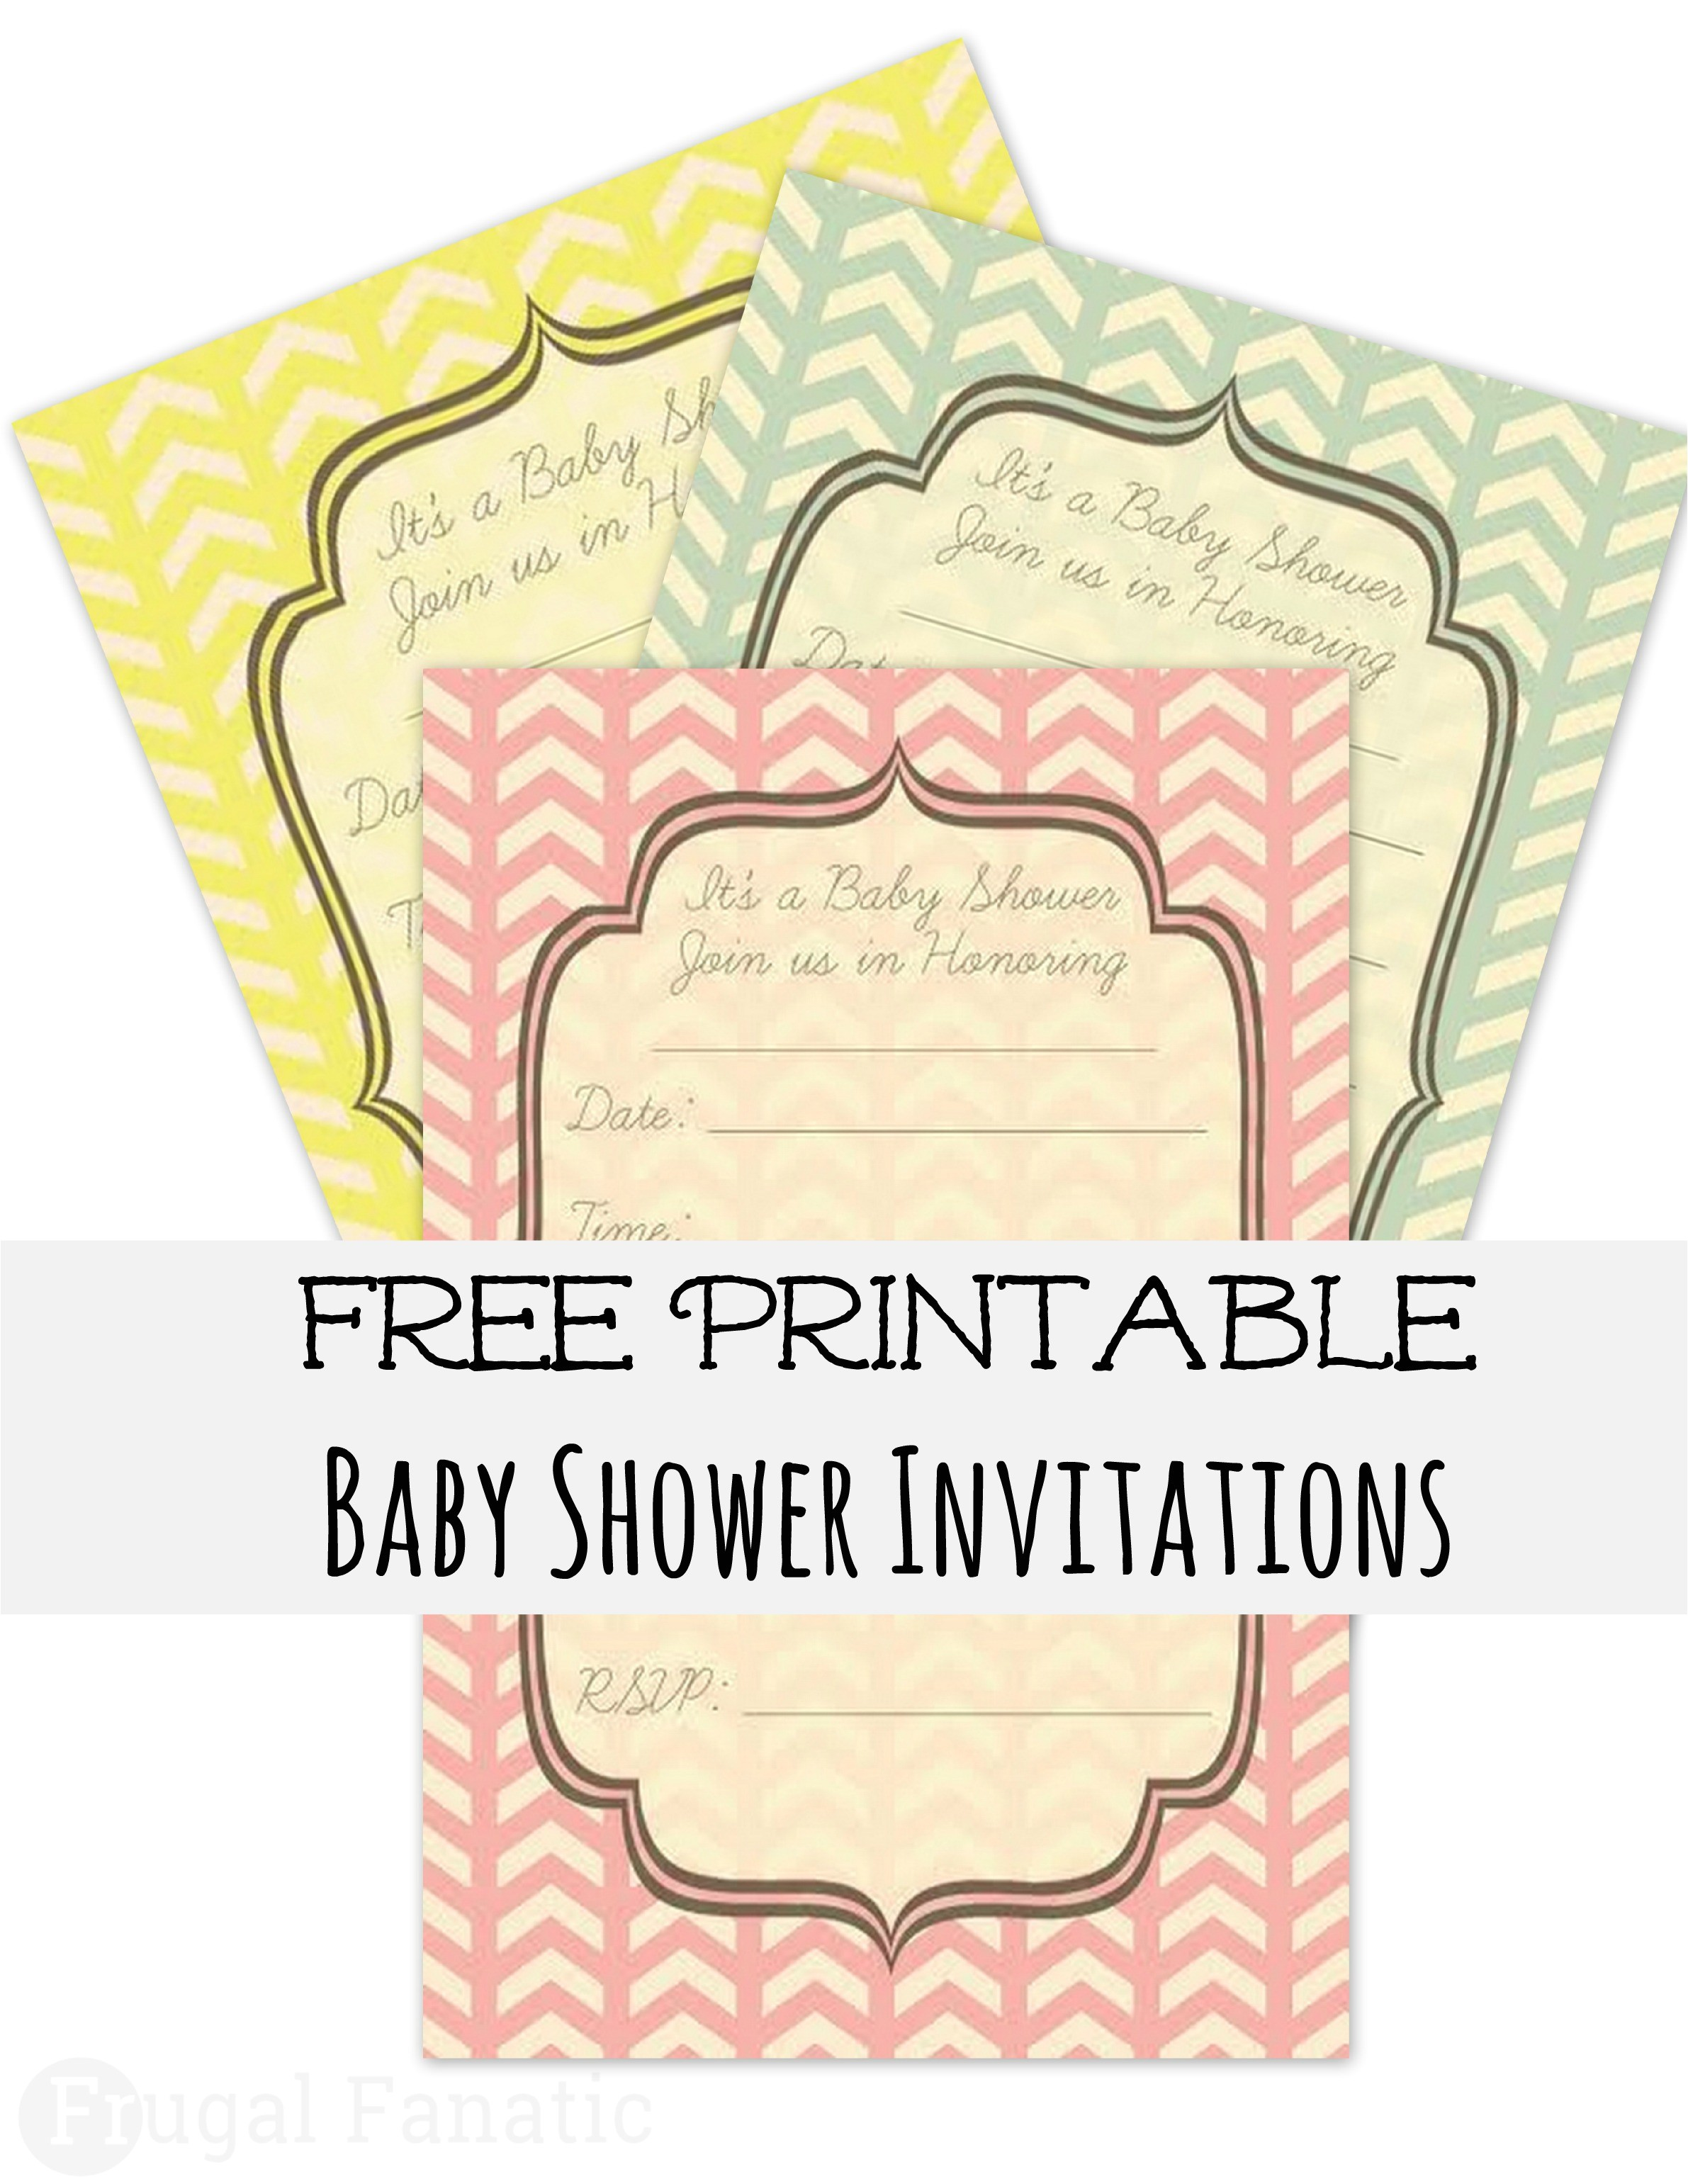 Create Your Own Baby Shower Invitations Free Online Baby Shower Invitations Create Your Own Free